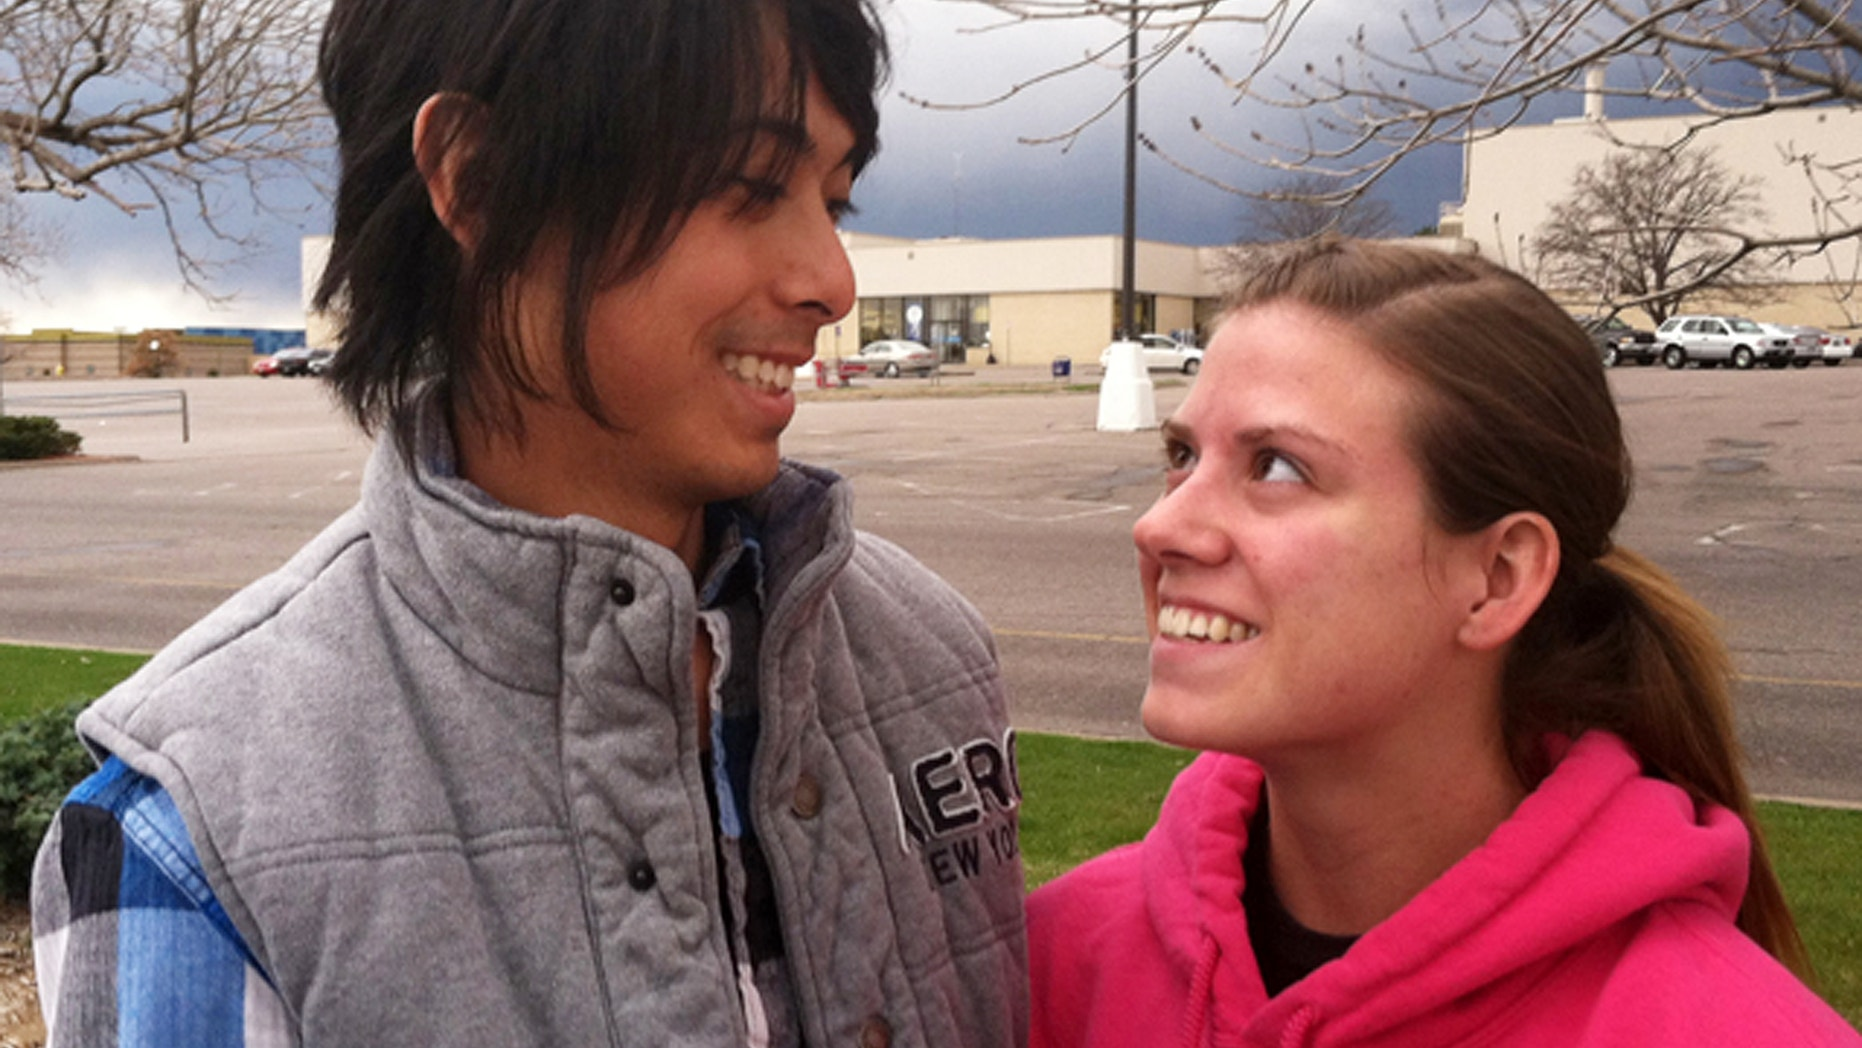 This undated photo released courtesy of KMGH-TV shows Eugene Han and Kirstin Davis who survived the Aurora theater shootings last July 20,2012. Han and Davis have decided to get married and scheduled their wedding for the first anniversary of the tragedy on July 20 to make it a happier day. Han was shot in the hip and knee and Davis says she suffered minor scratches in the assault on a packed movie theater. (AP Photo/KMGH-TV)